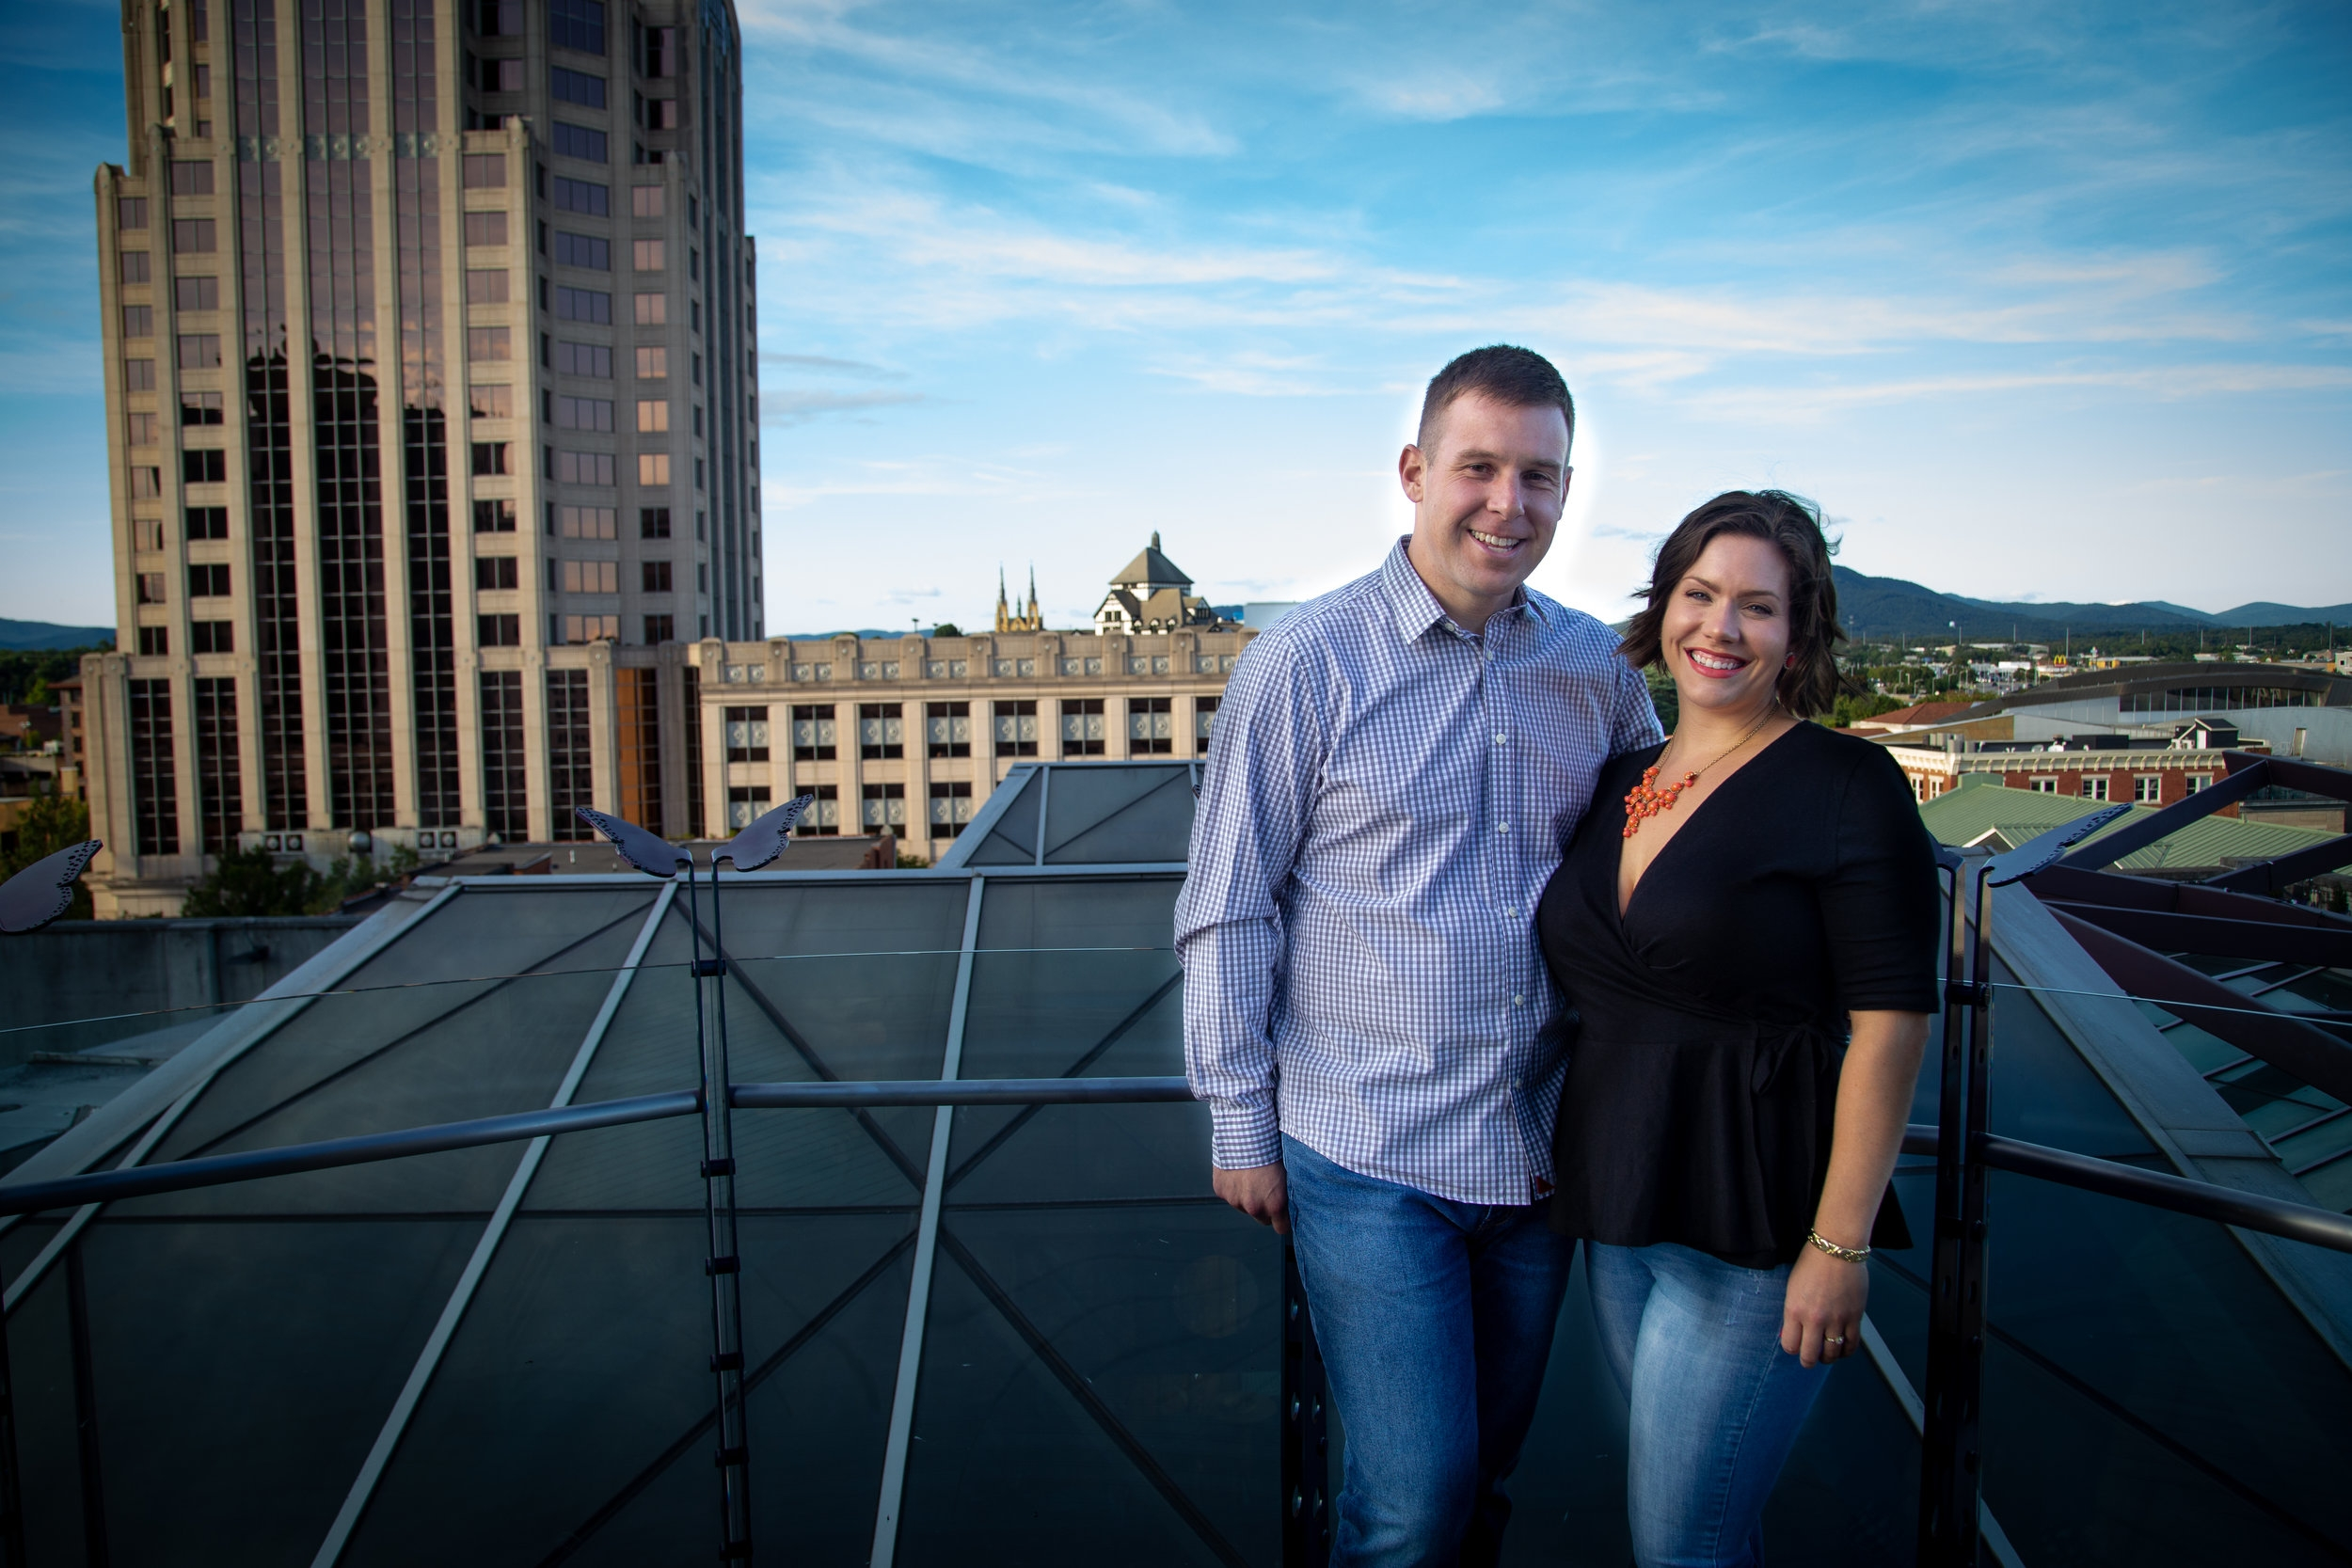 center-in-the-square-downtown-roanoke-urban-rooftop-engagment-wedding-wells-fargo-building-mountains-couple-love-engaged